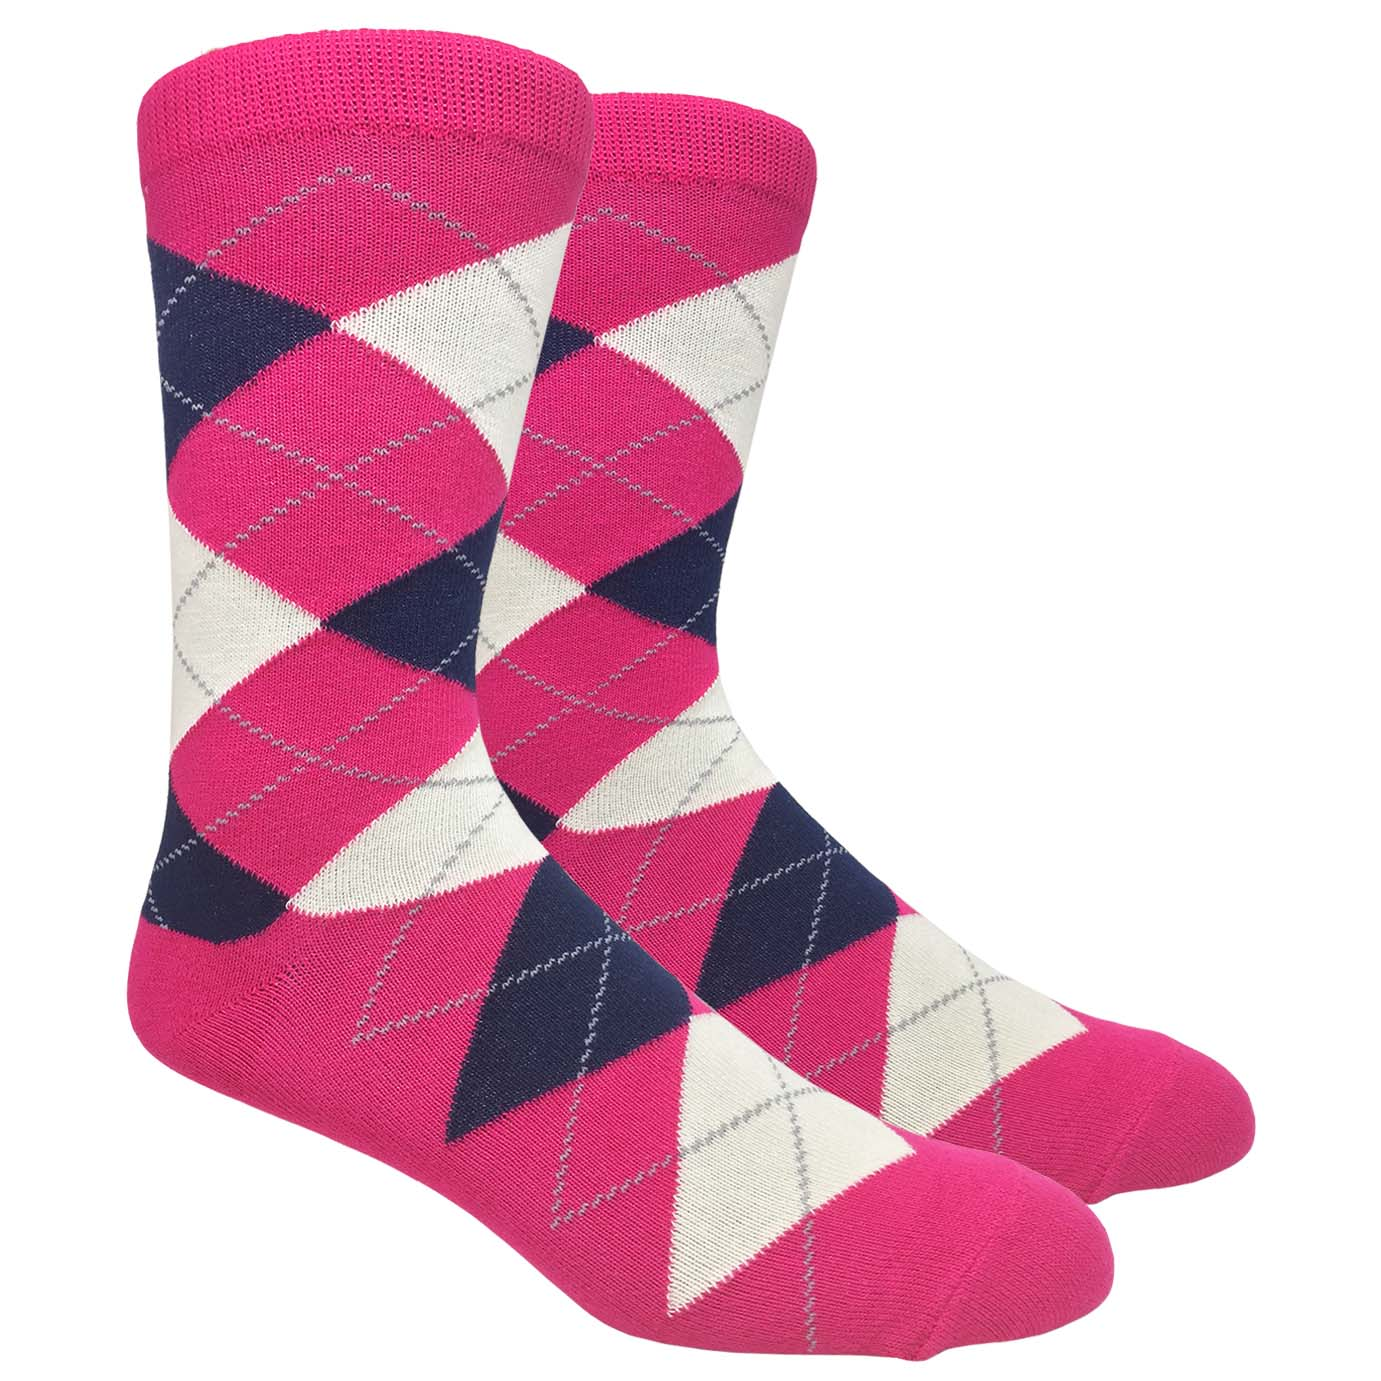 FineFit Black Label Argyle Socks - Hot Pink